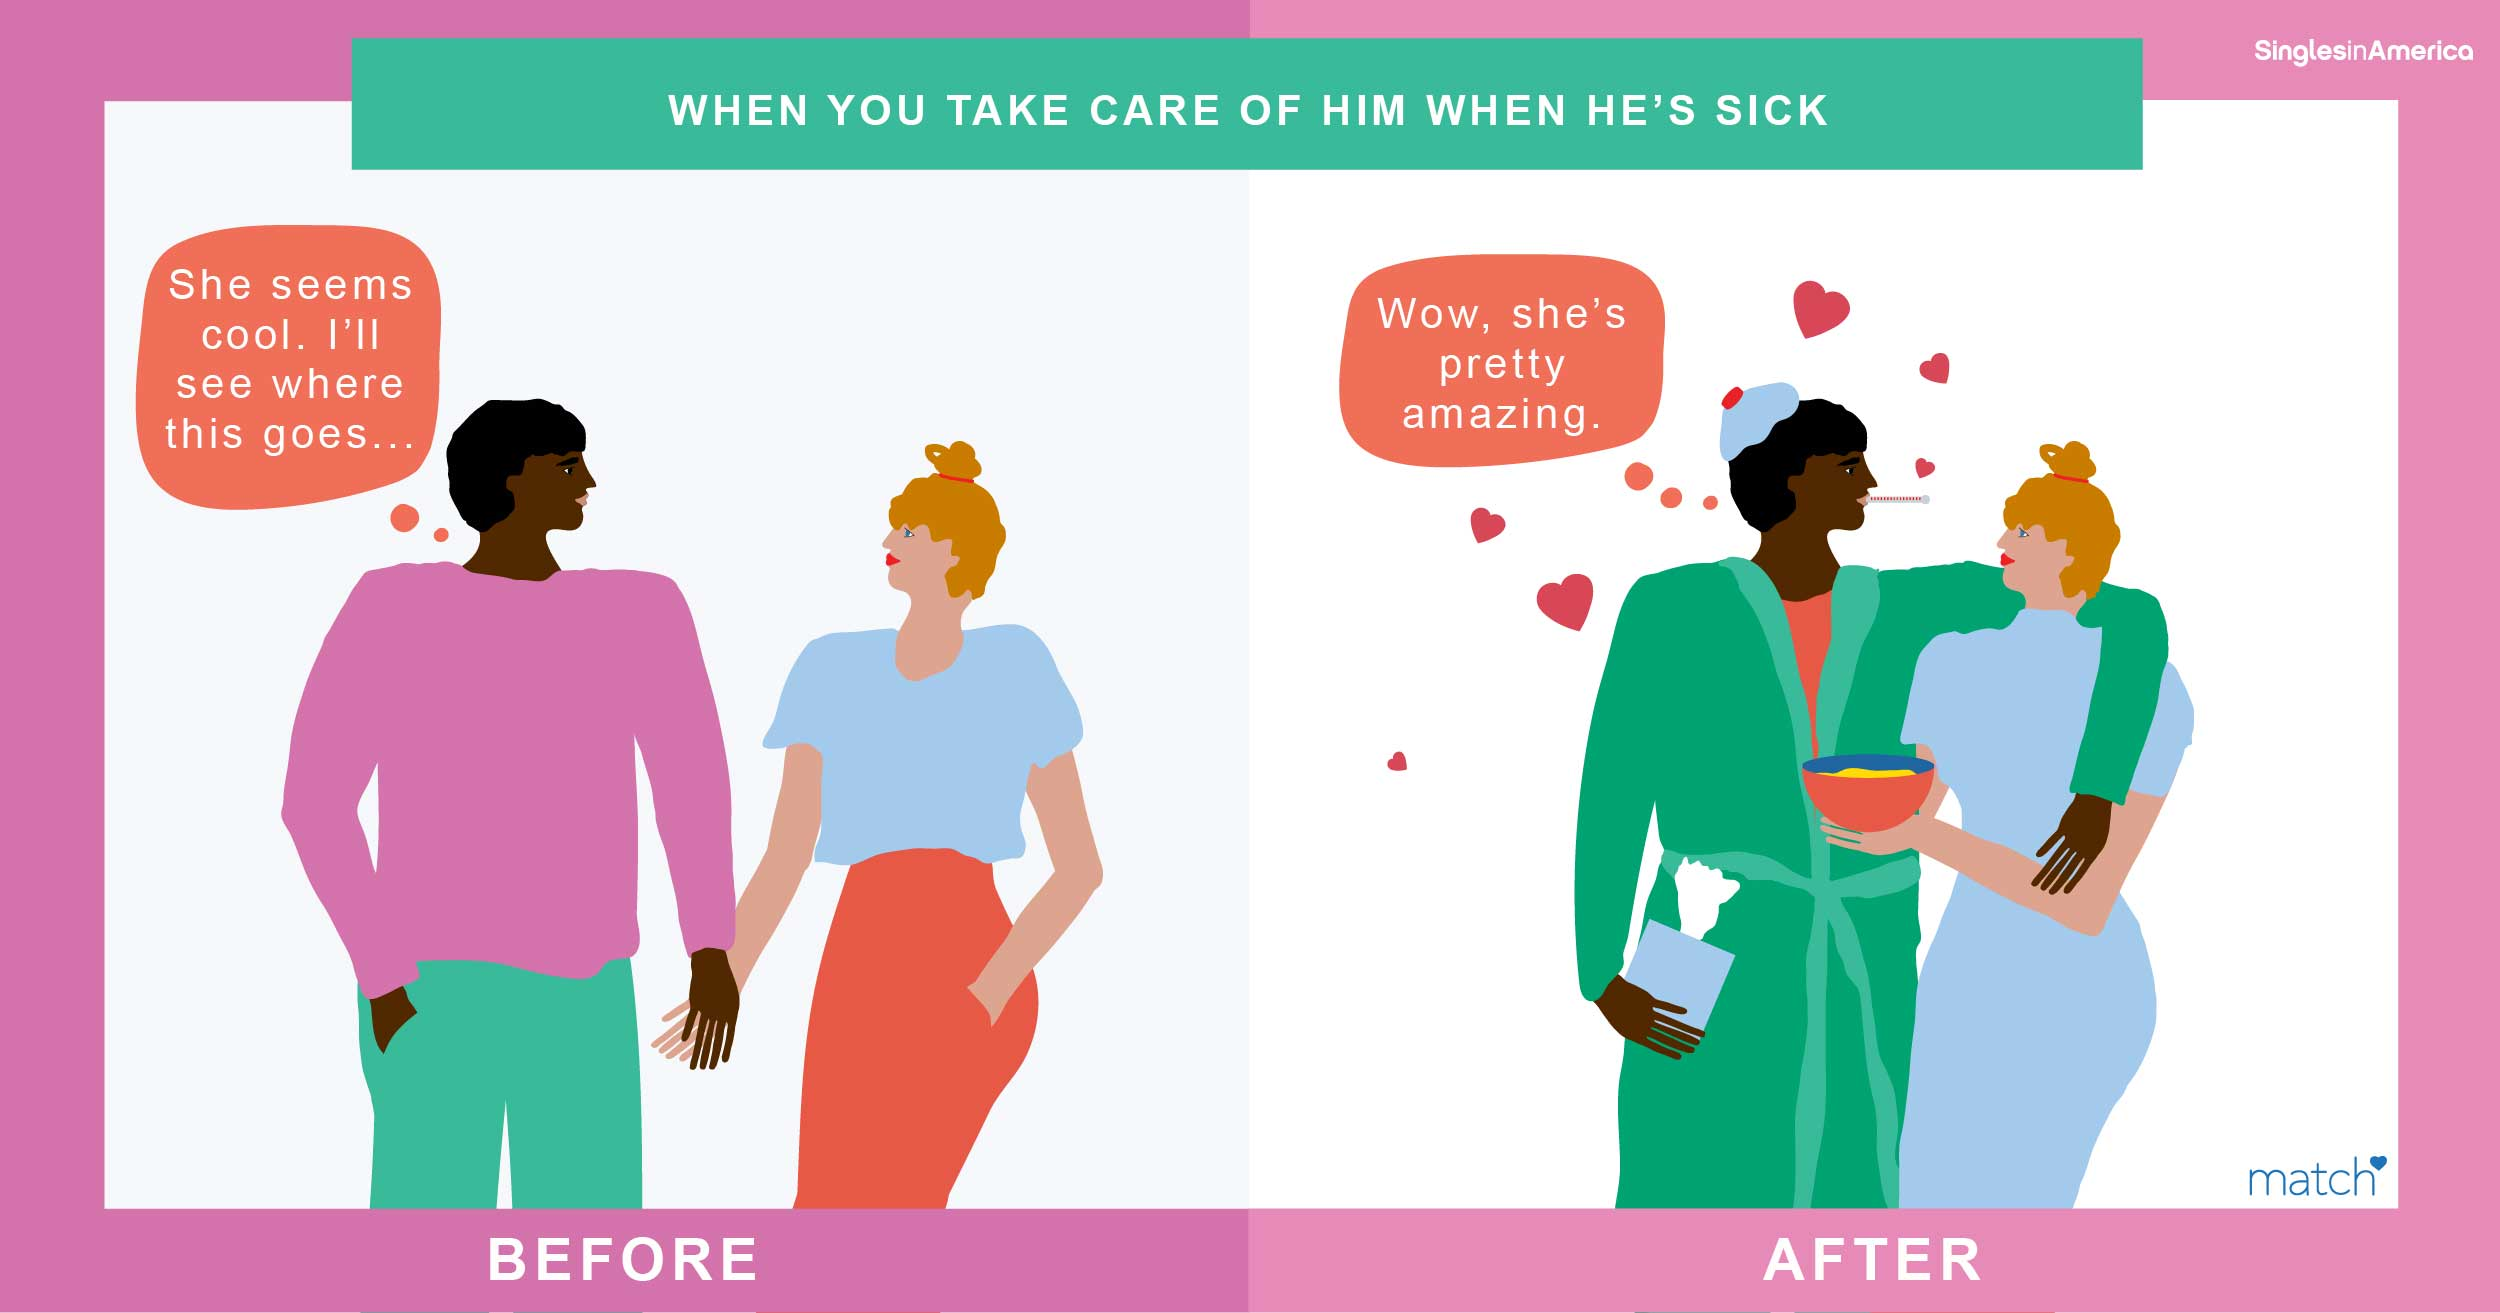 87% of single men think caring for them when sick is the most important moment in a budding romance.